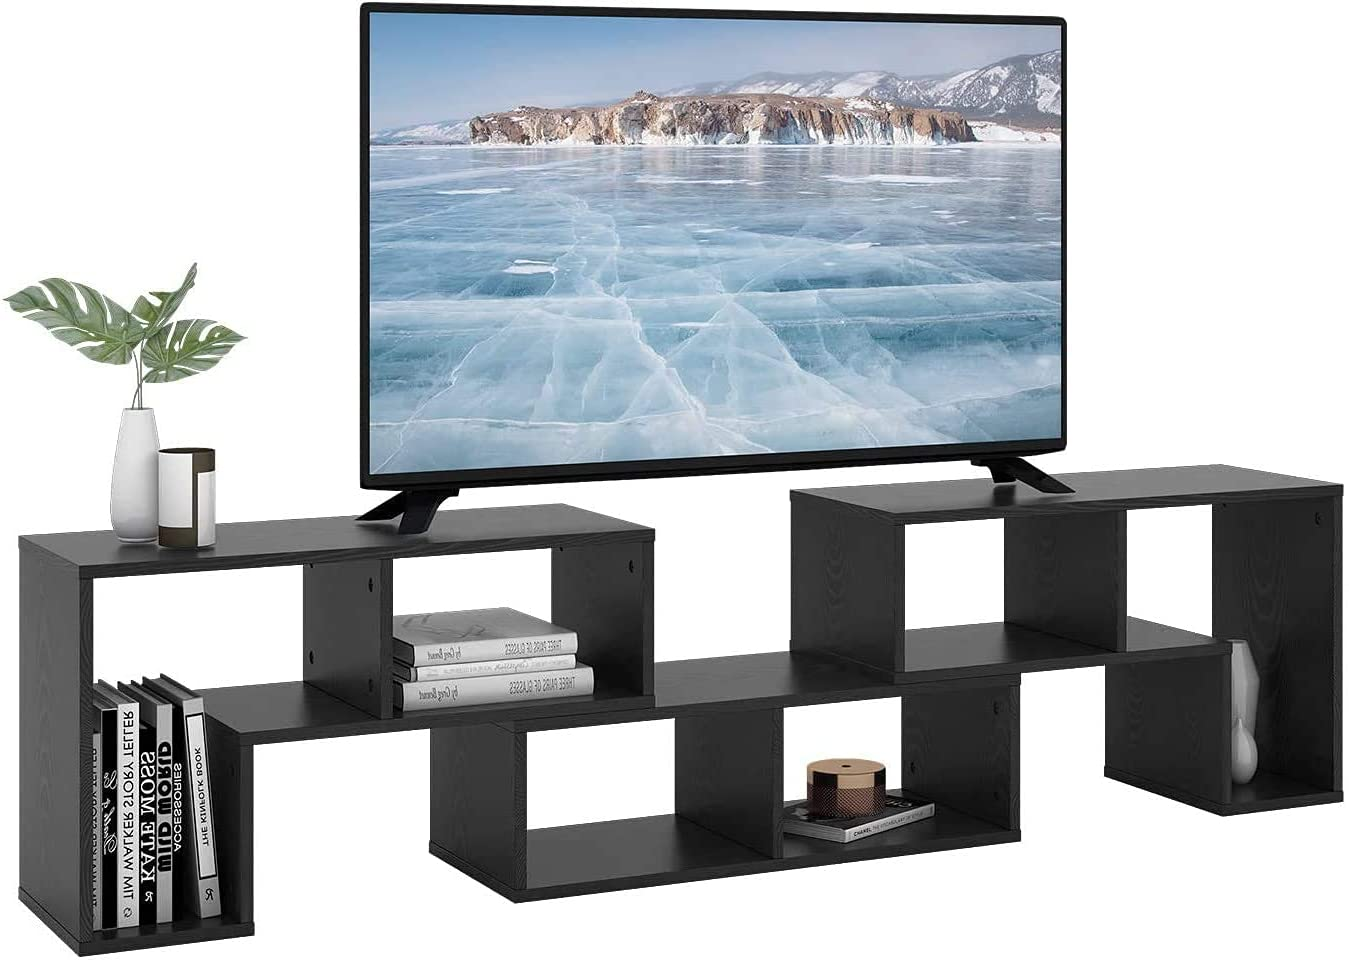 DEVAISE 3 Pieces TV Console Stand, Modern Entertainment Center Media Stand, TV Table Storage Bookcase Shelf for Living Room, Black